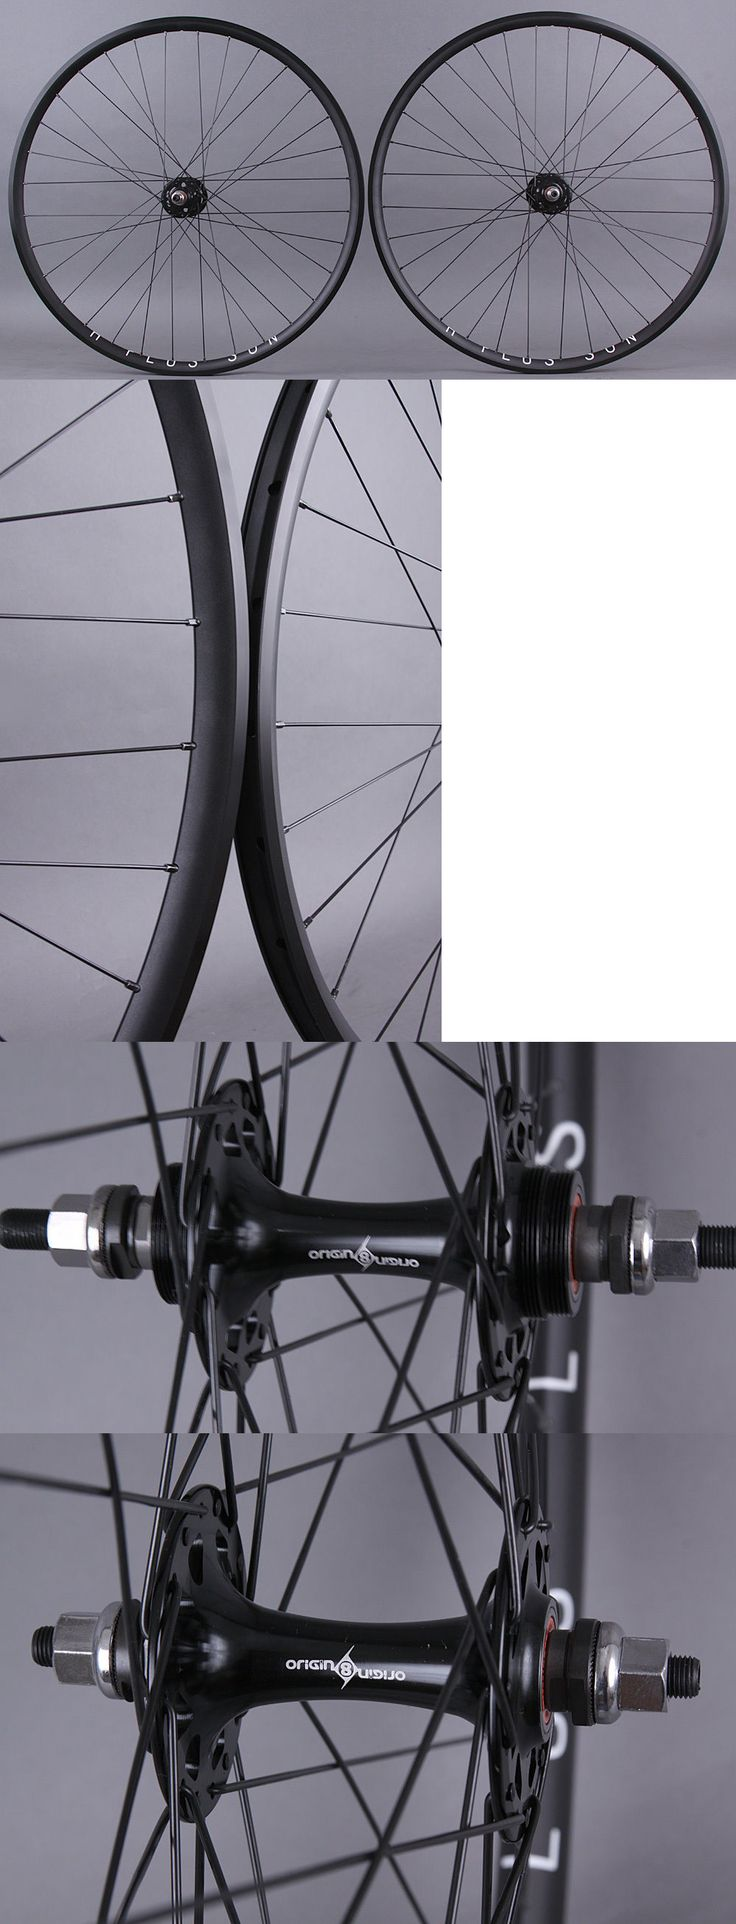 Wheels and Wheelsets 177830: H + Plus Son Archetype Black Rims Track Fixed Gear Bike Wheelset Dt Competition BUY IT NOW ONLY: $289.0